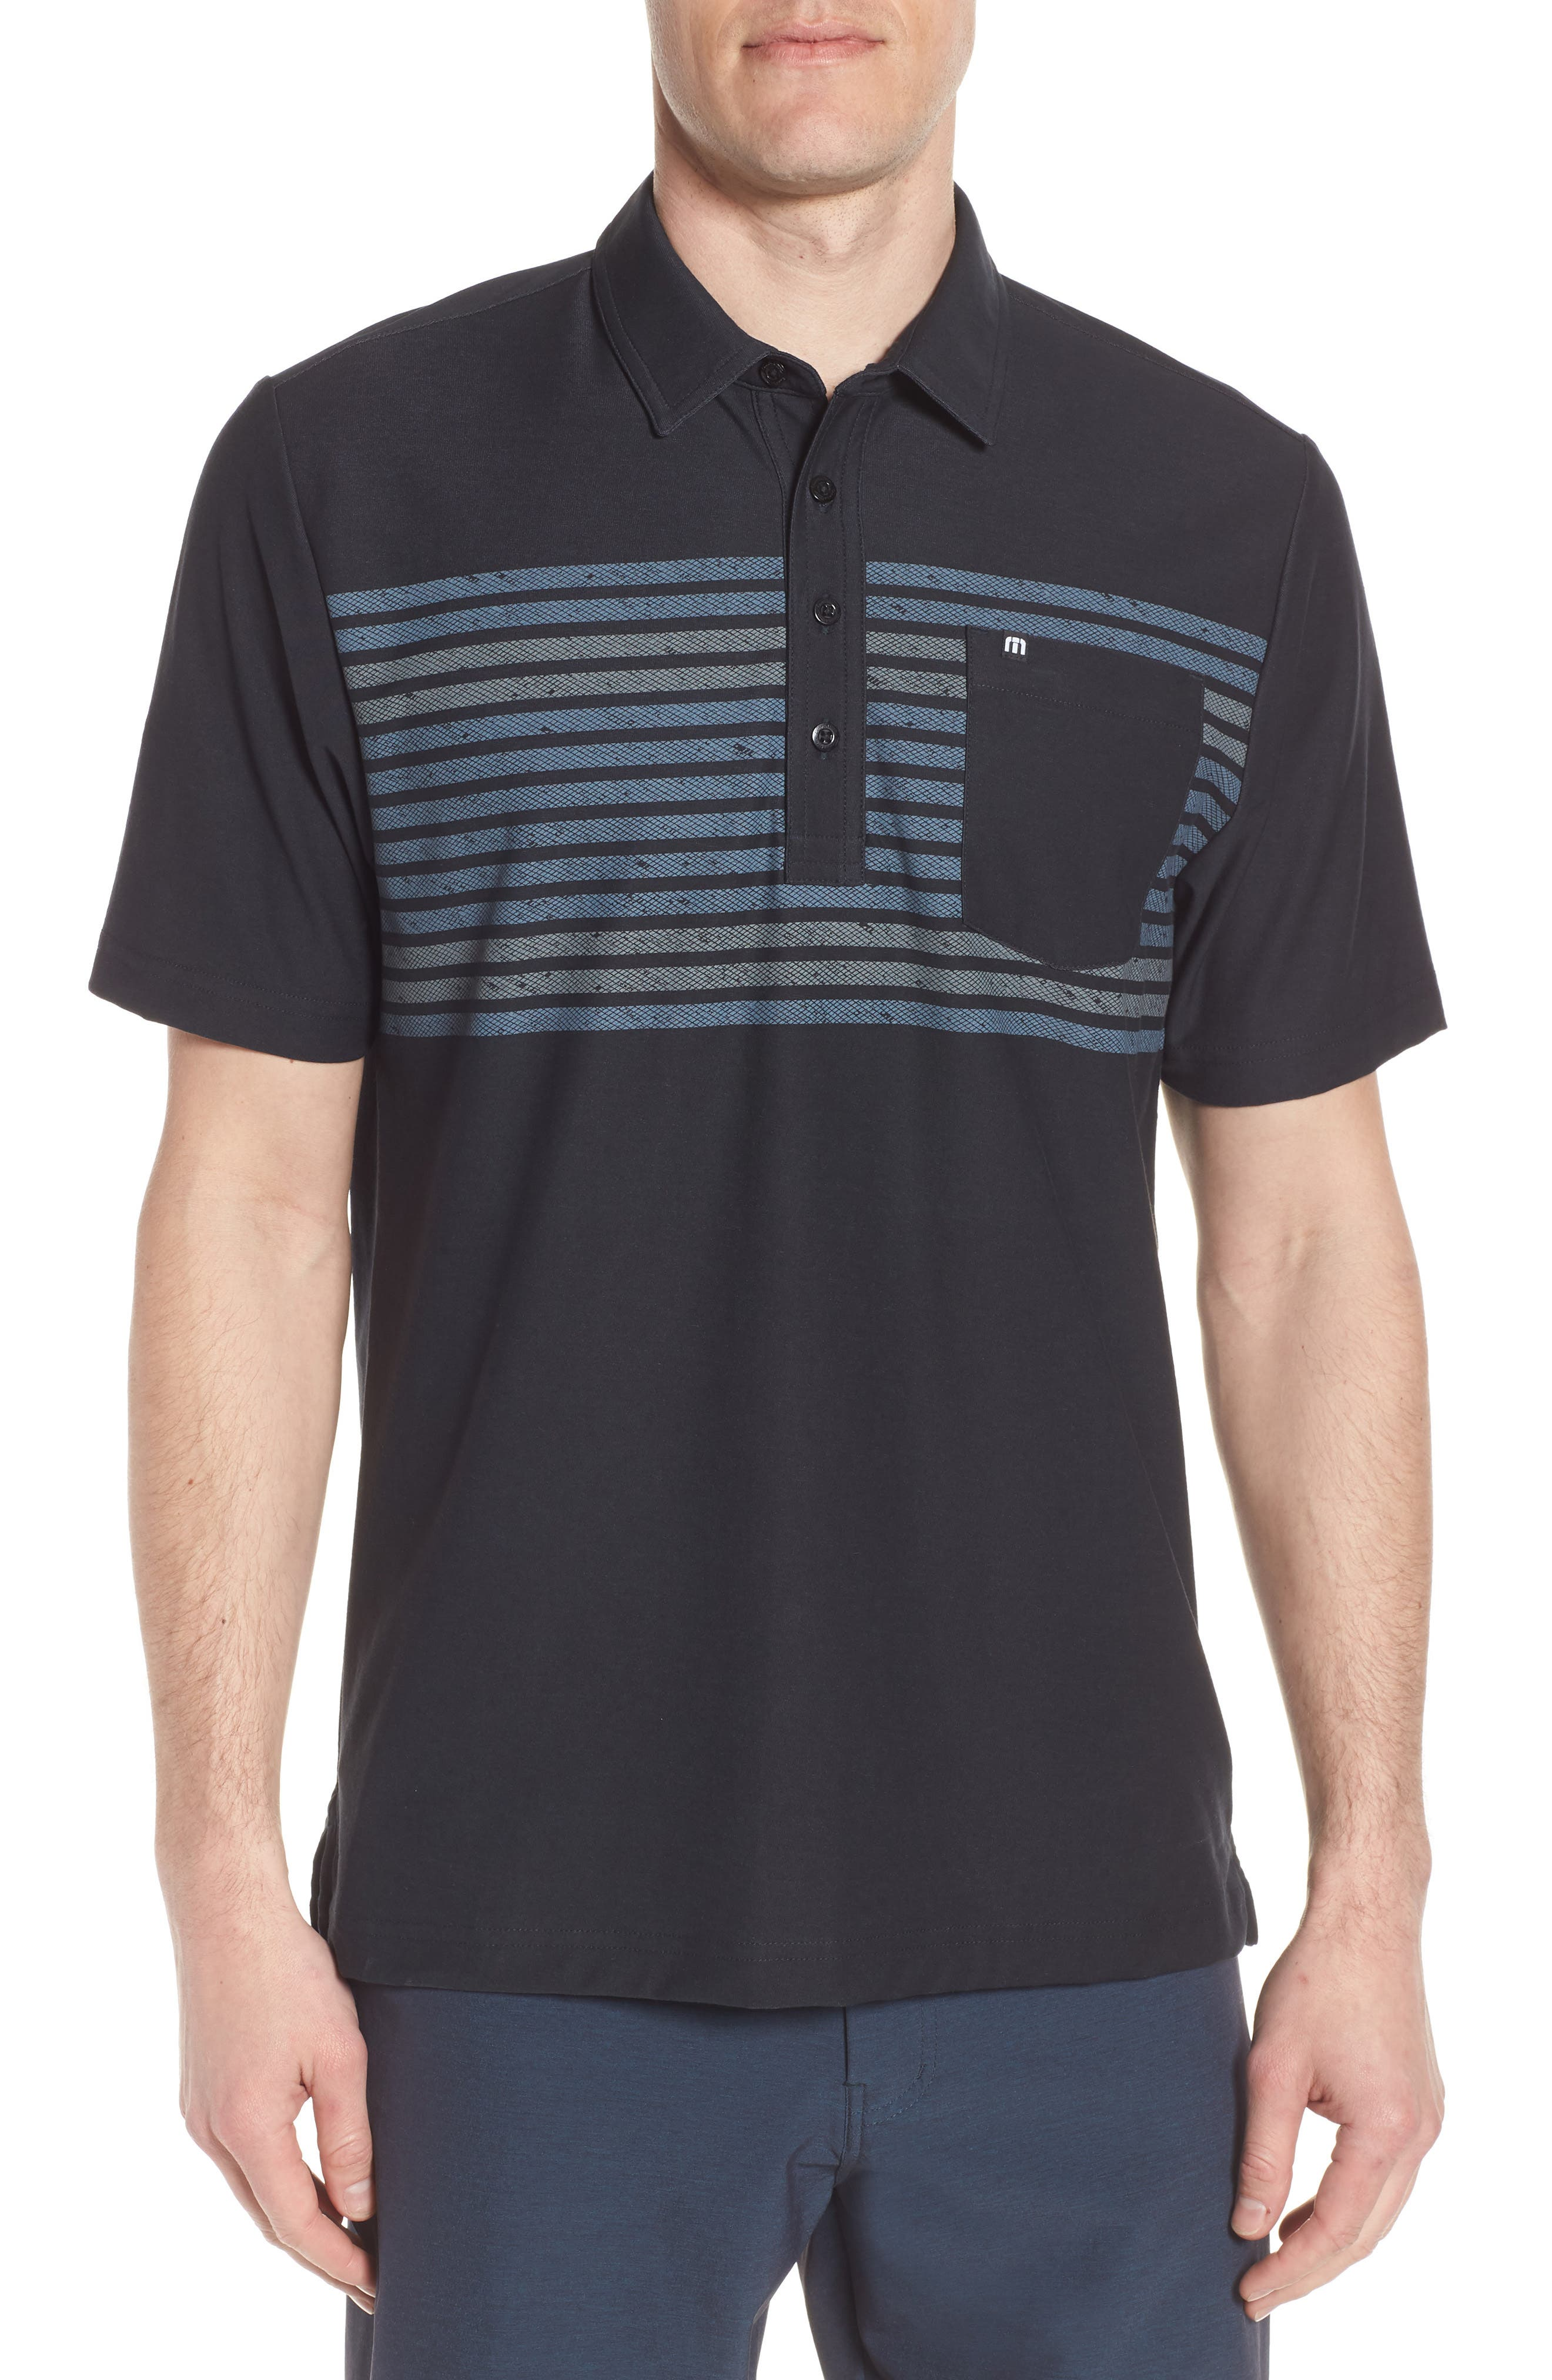 Sweet Lu Regular Fit Polo,                             Main thumbnail 1, color,                             BLACK/ GRISAILLE